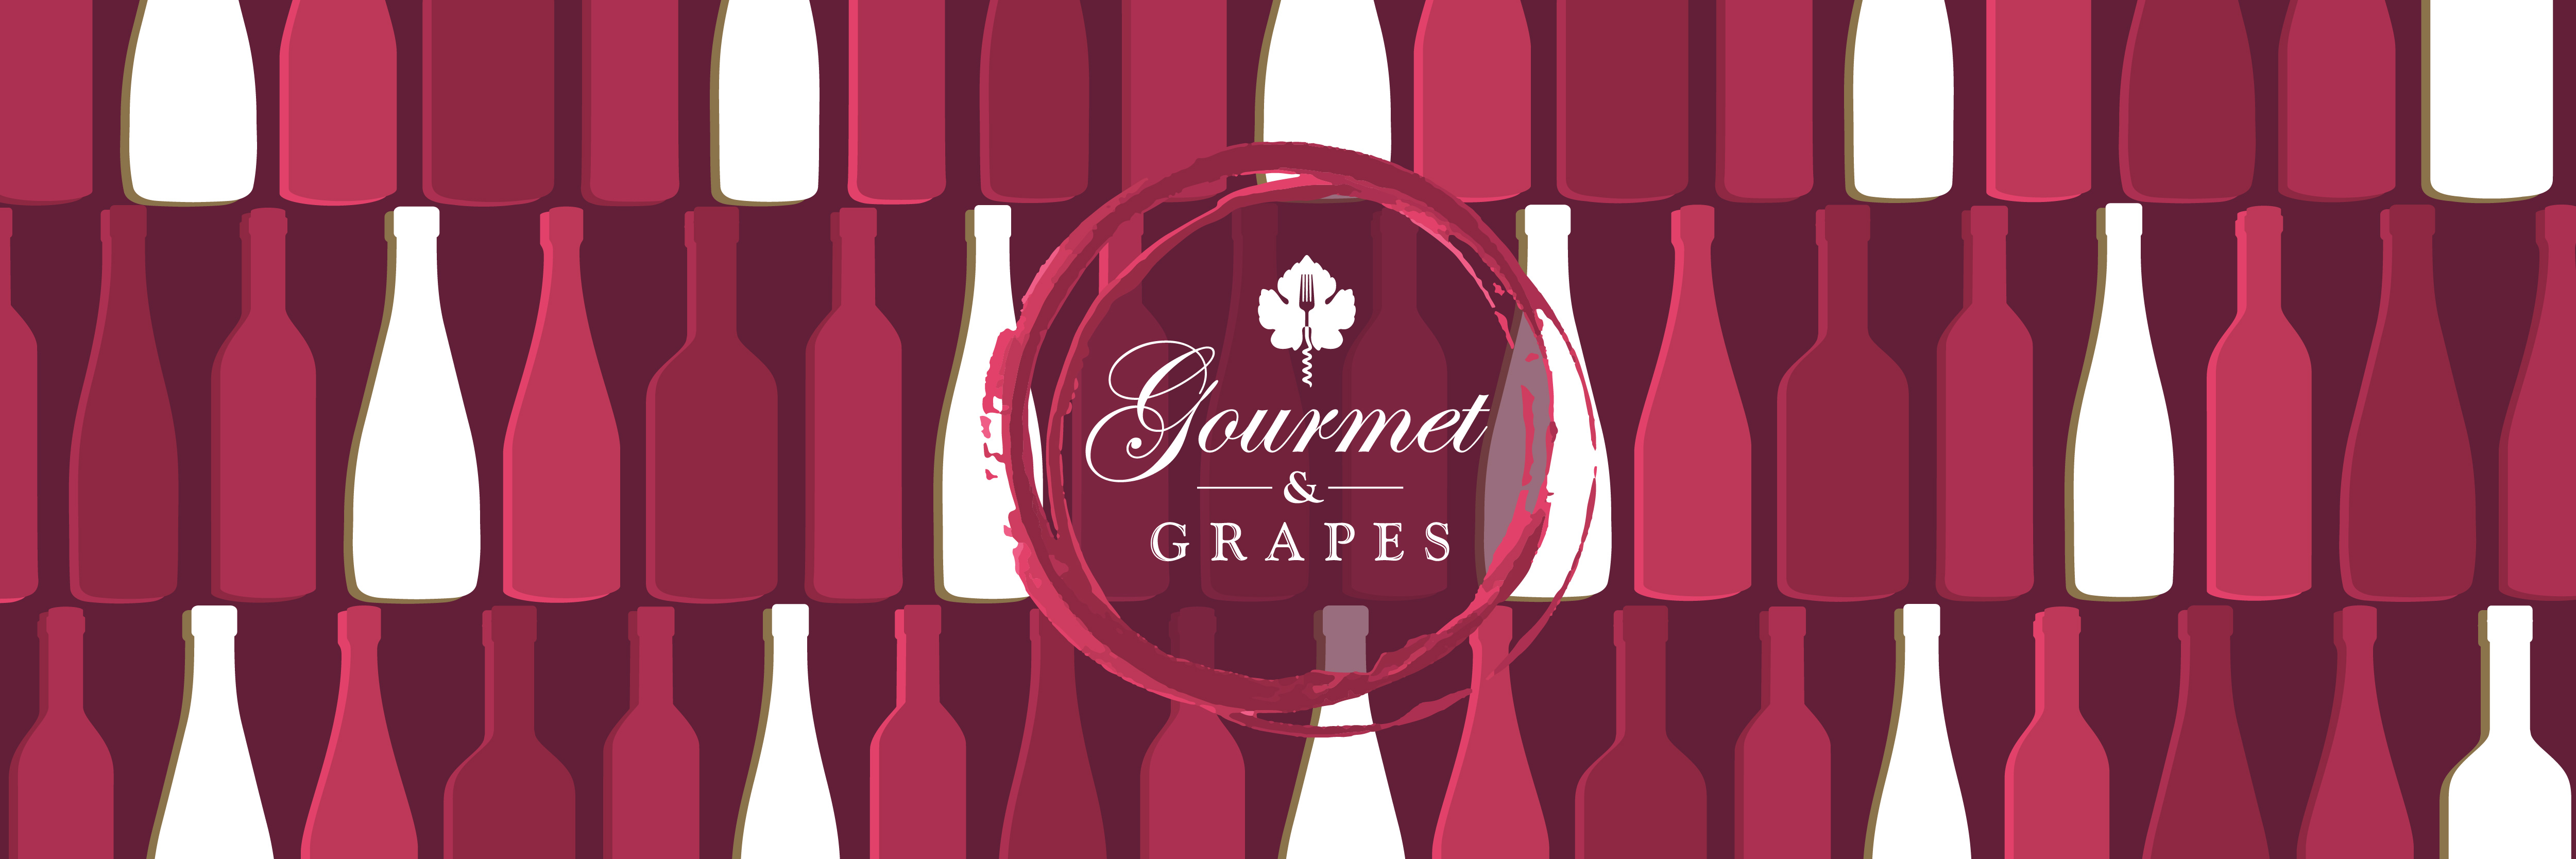 Gourmet, Grapes & Giving (Now, that's a Win-Vin Situation!)